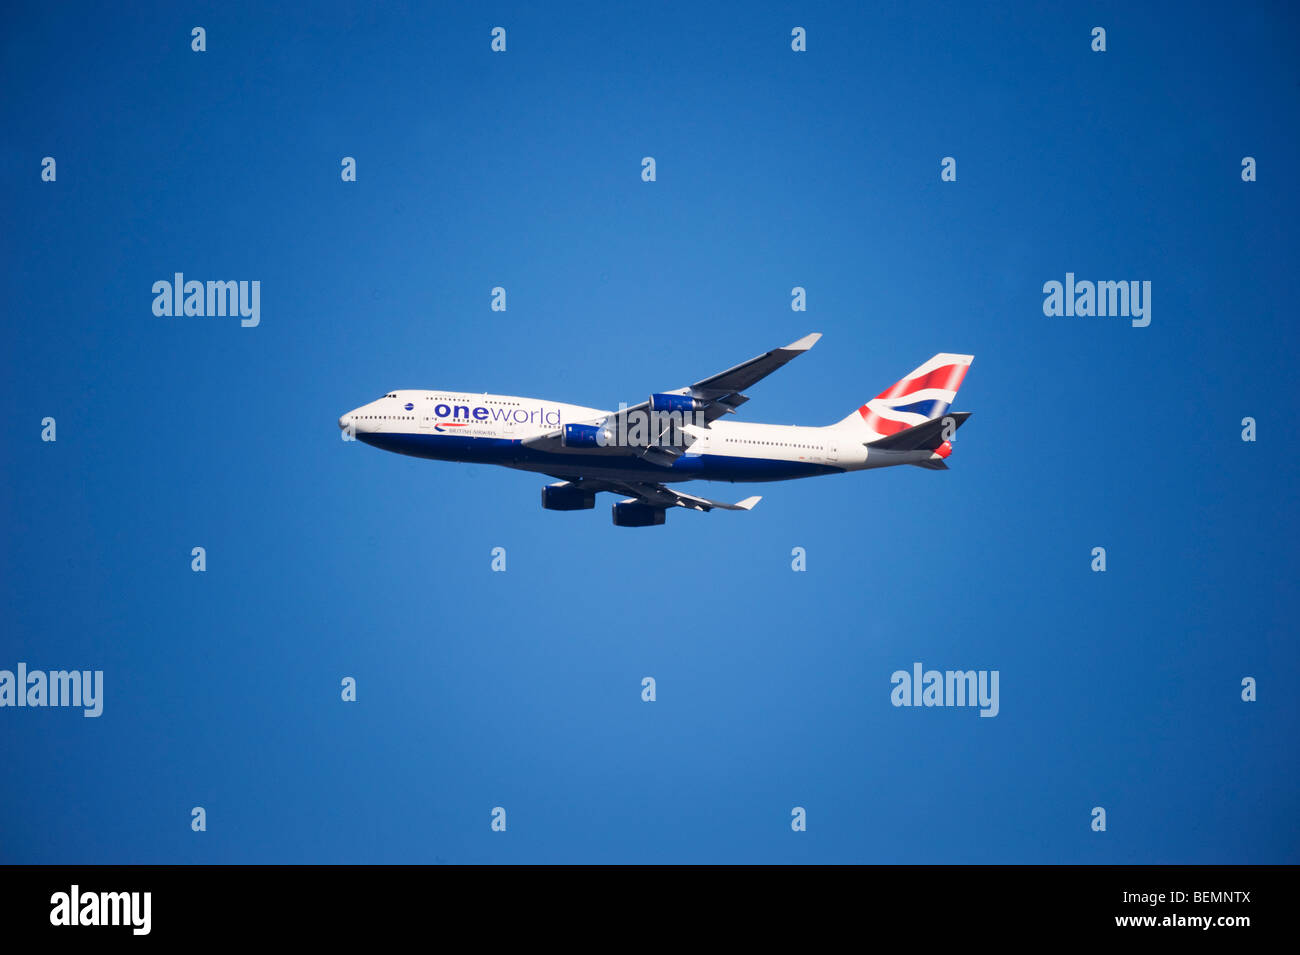 British Airways Boeing 747 jumbo jet Stock Photo